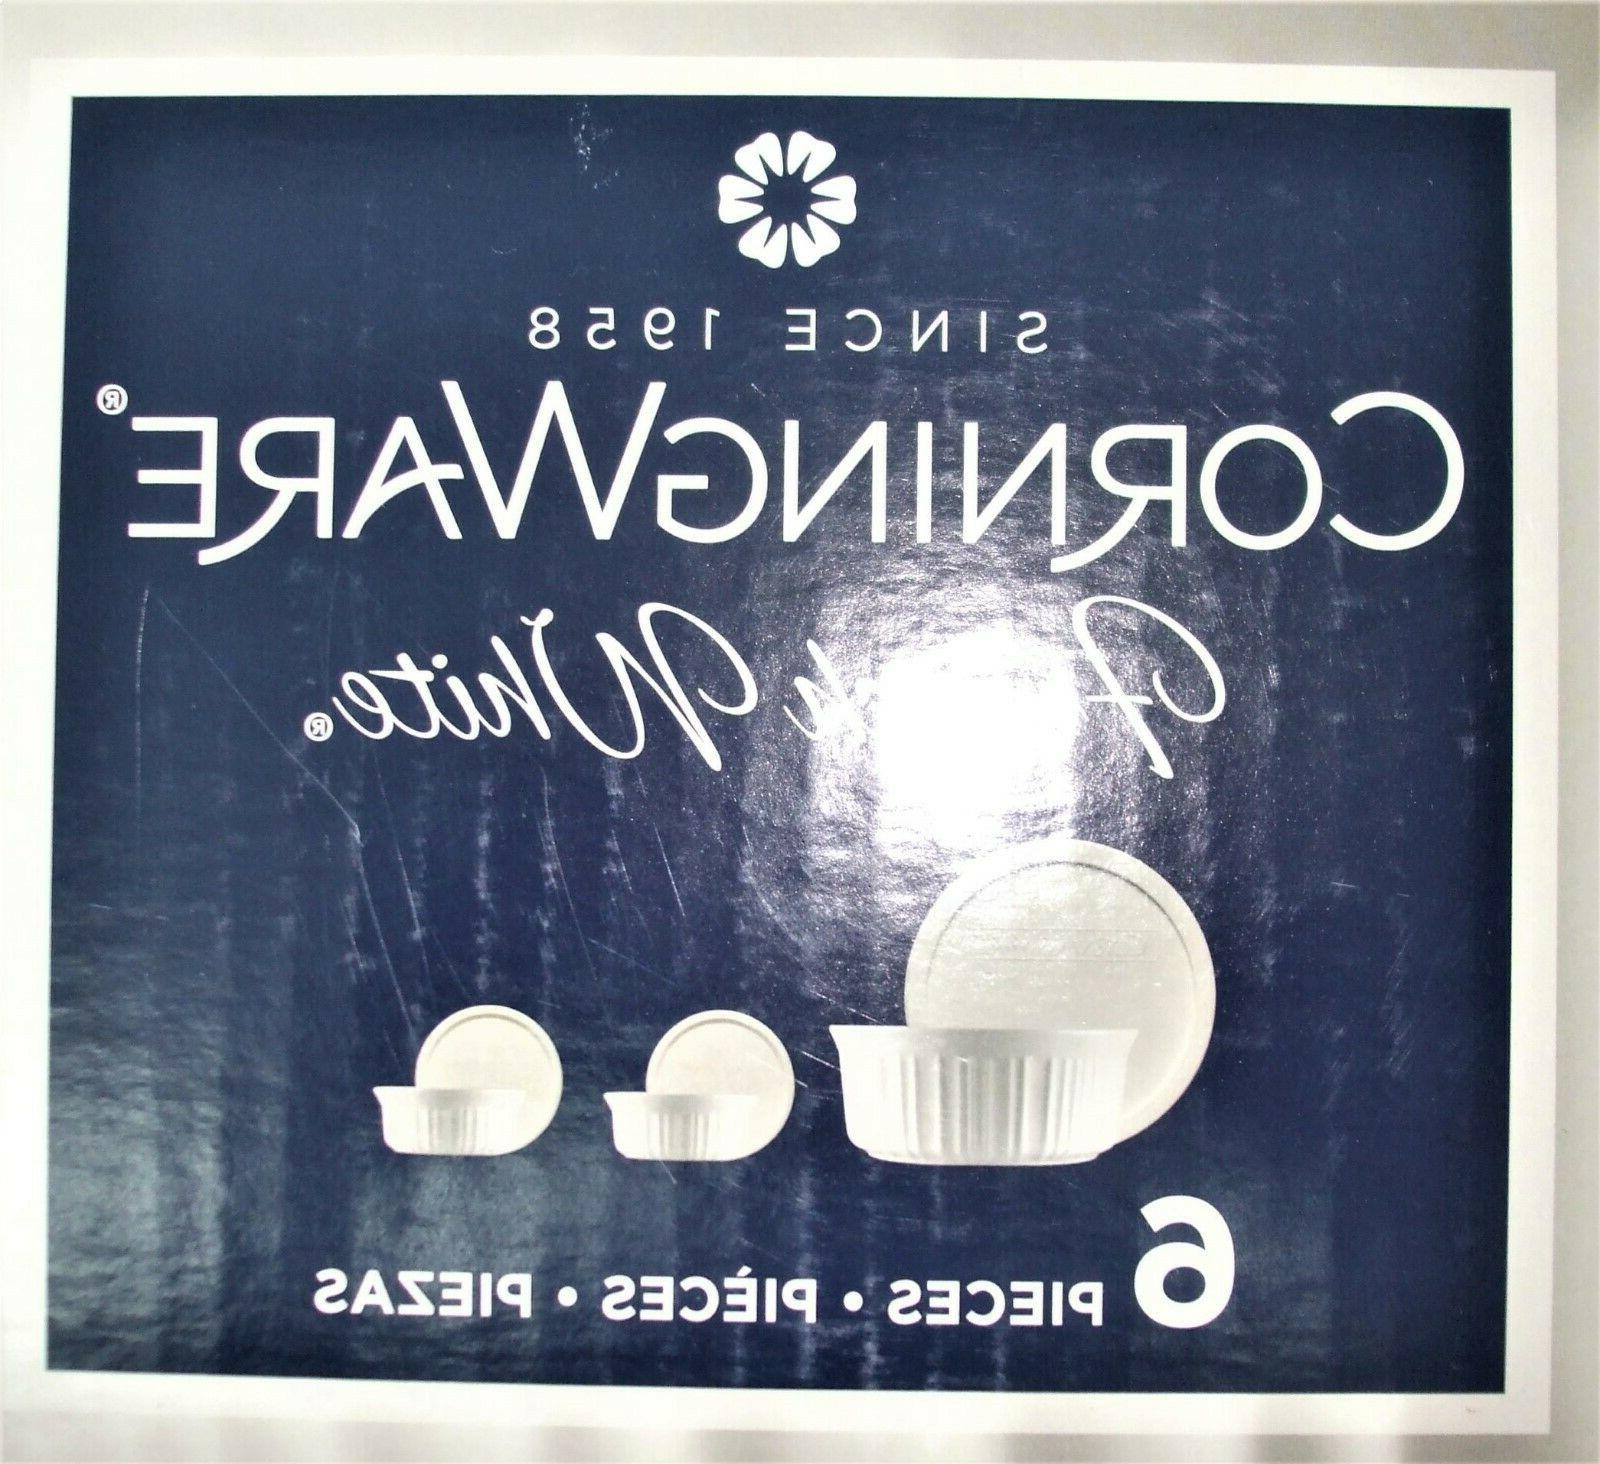 NEW CorningWare French White 6 PC. Bakeware With Lids